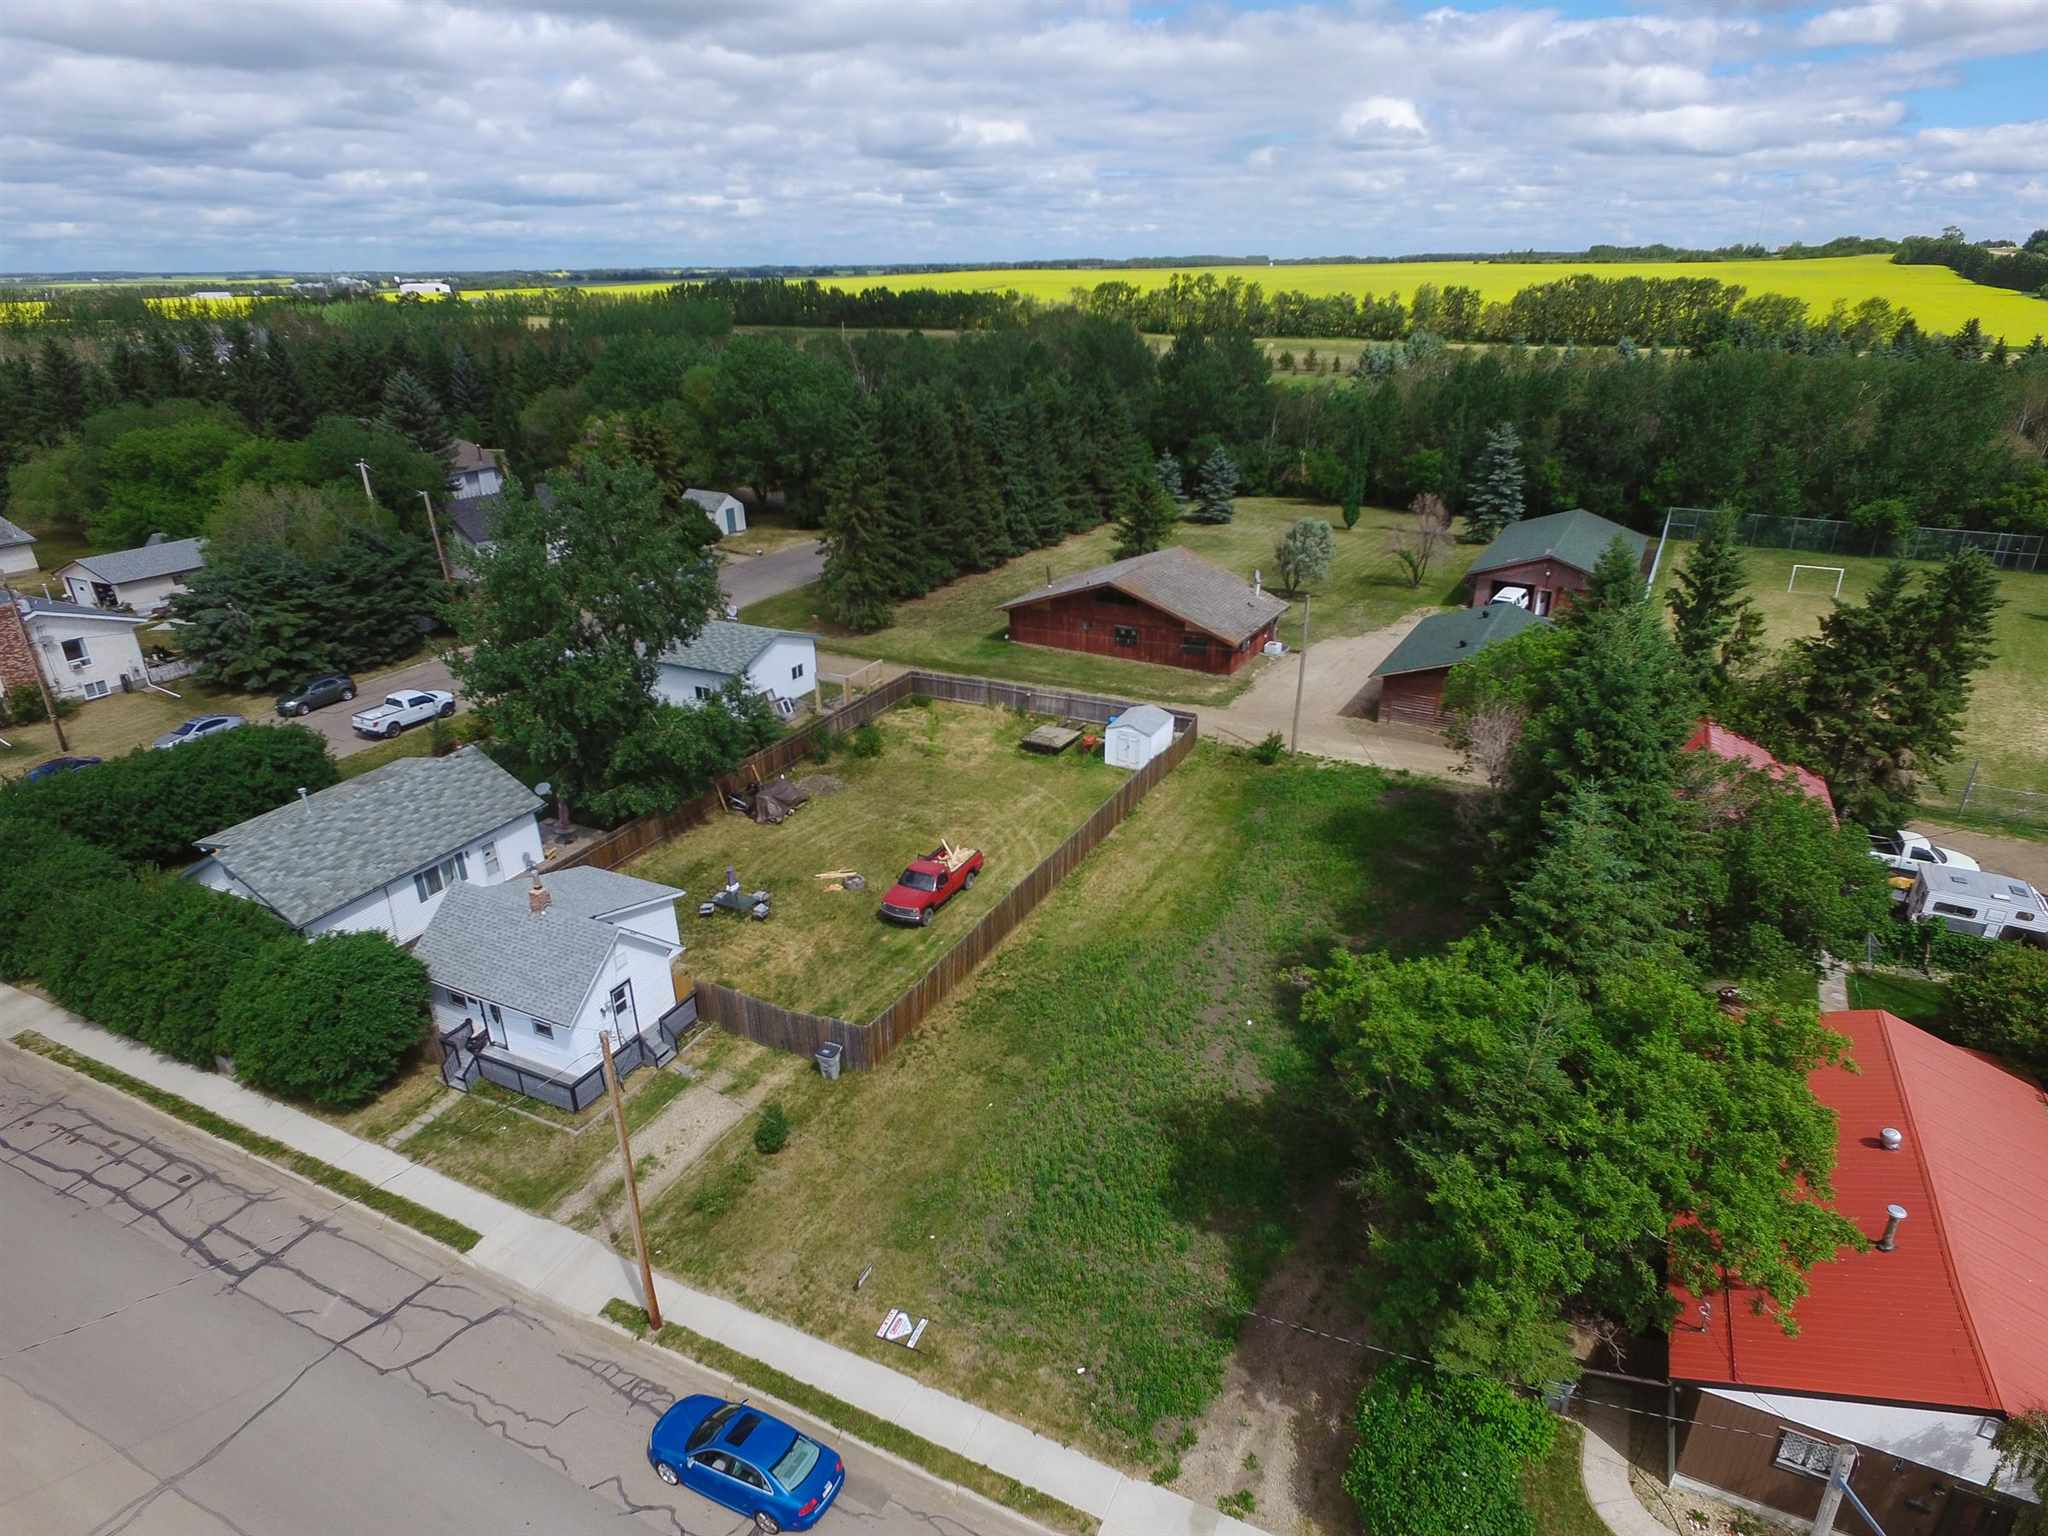 Vacant lot with incredible builder opportunity and also zoned for a half duplex development as well. The fully serviced lot is located right across from Legal School and Ecole Citadelle School and close to many other incredible amenities.